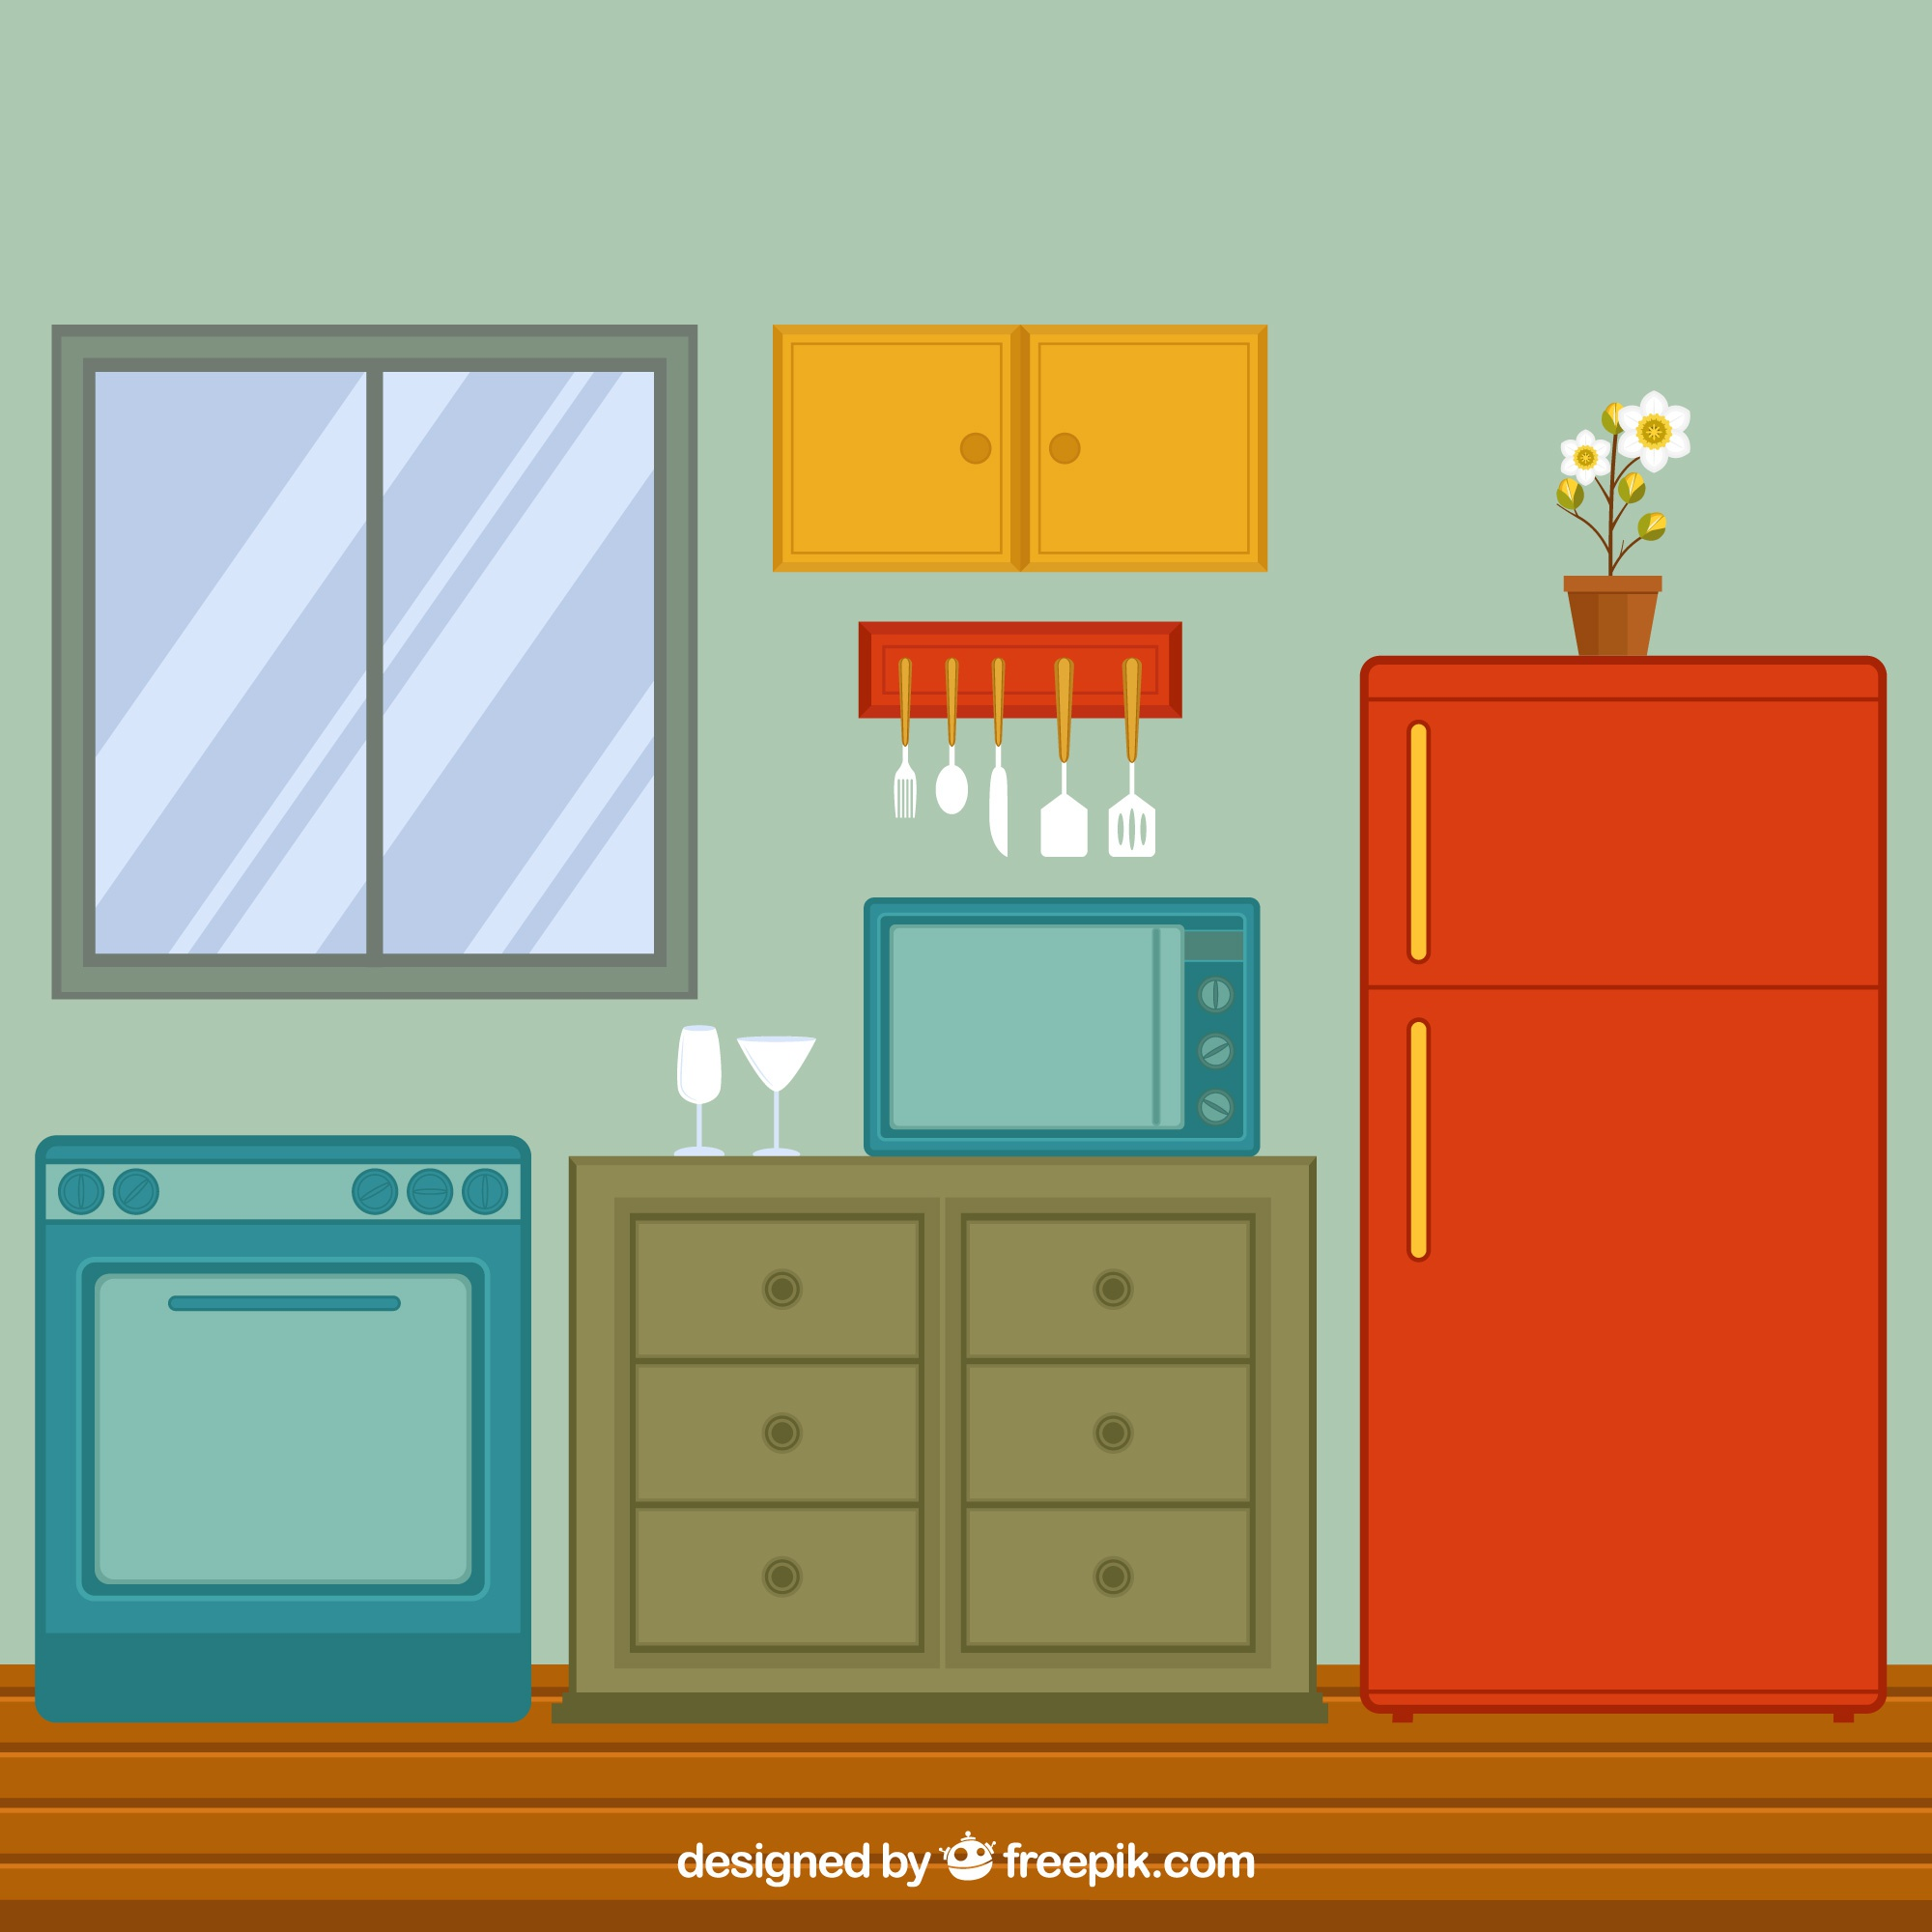 View of flat kitchen with fridge and oven